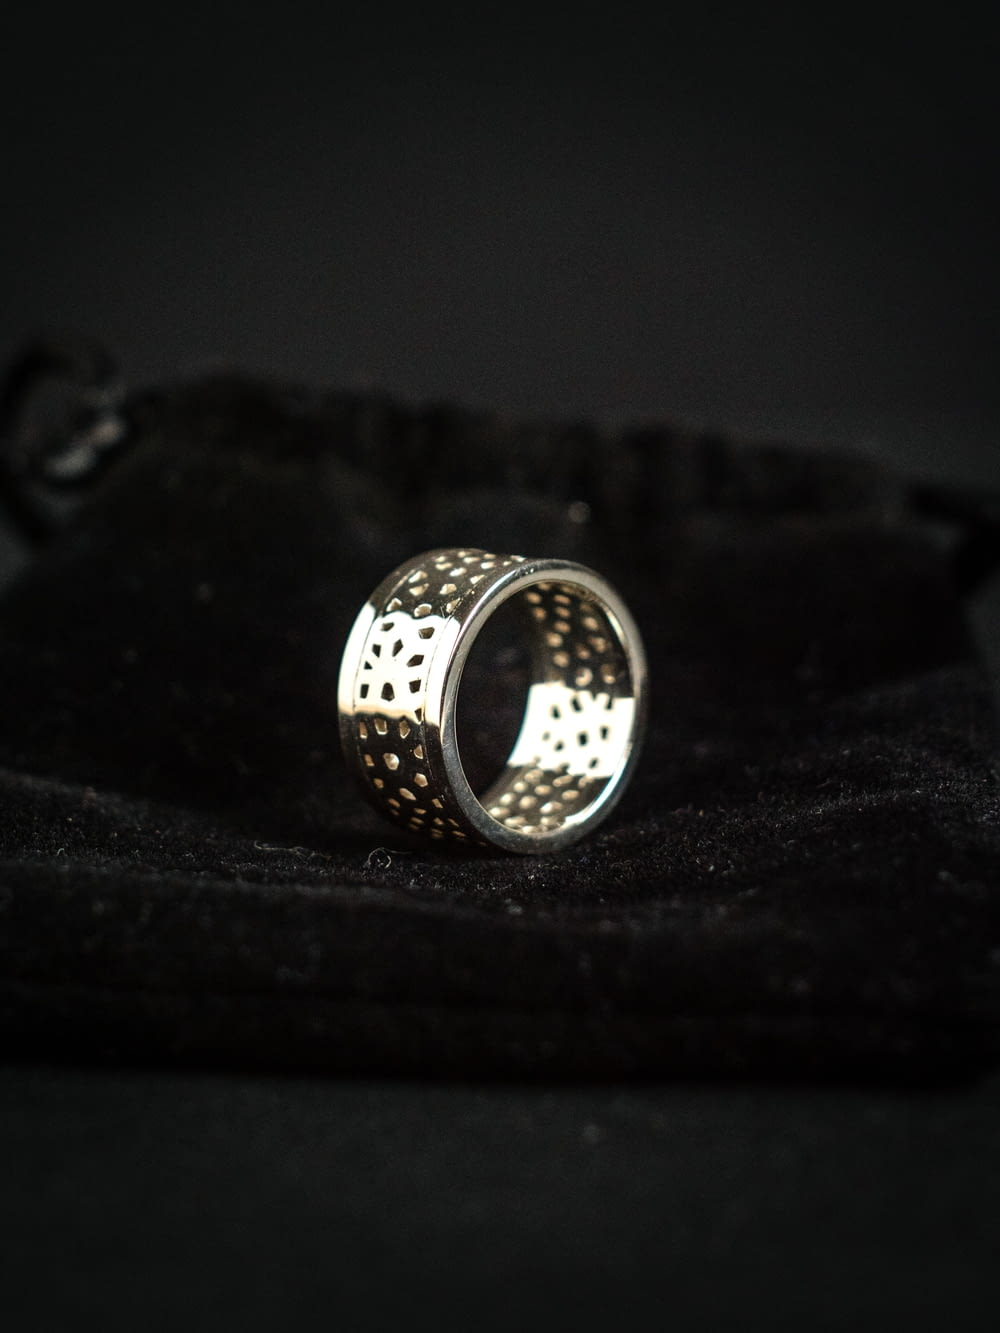 silver ring on black textile